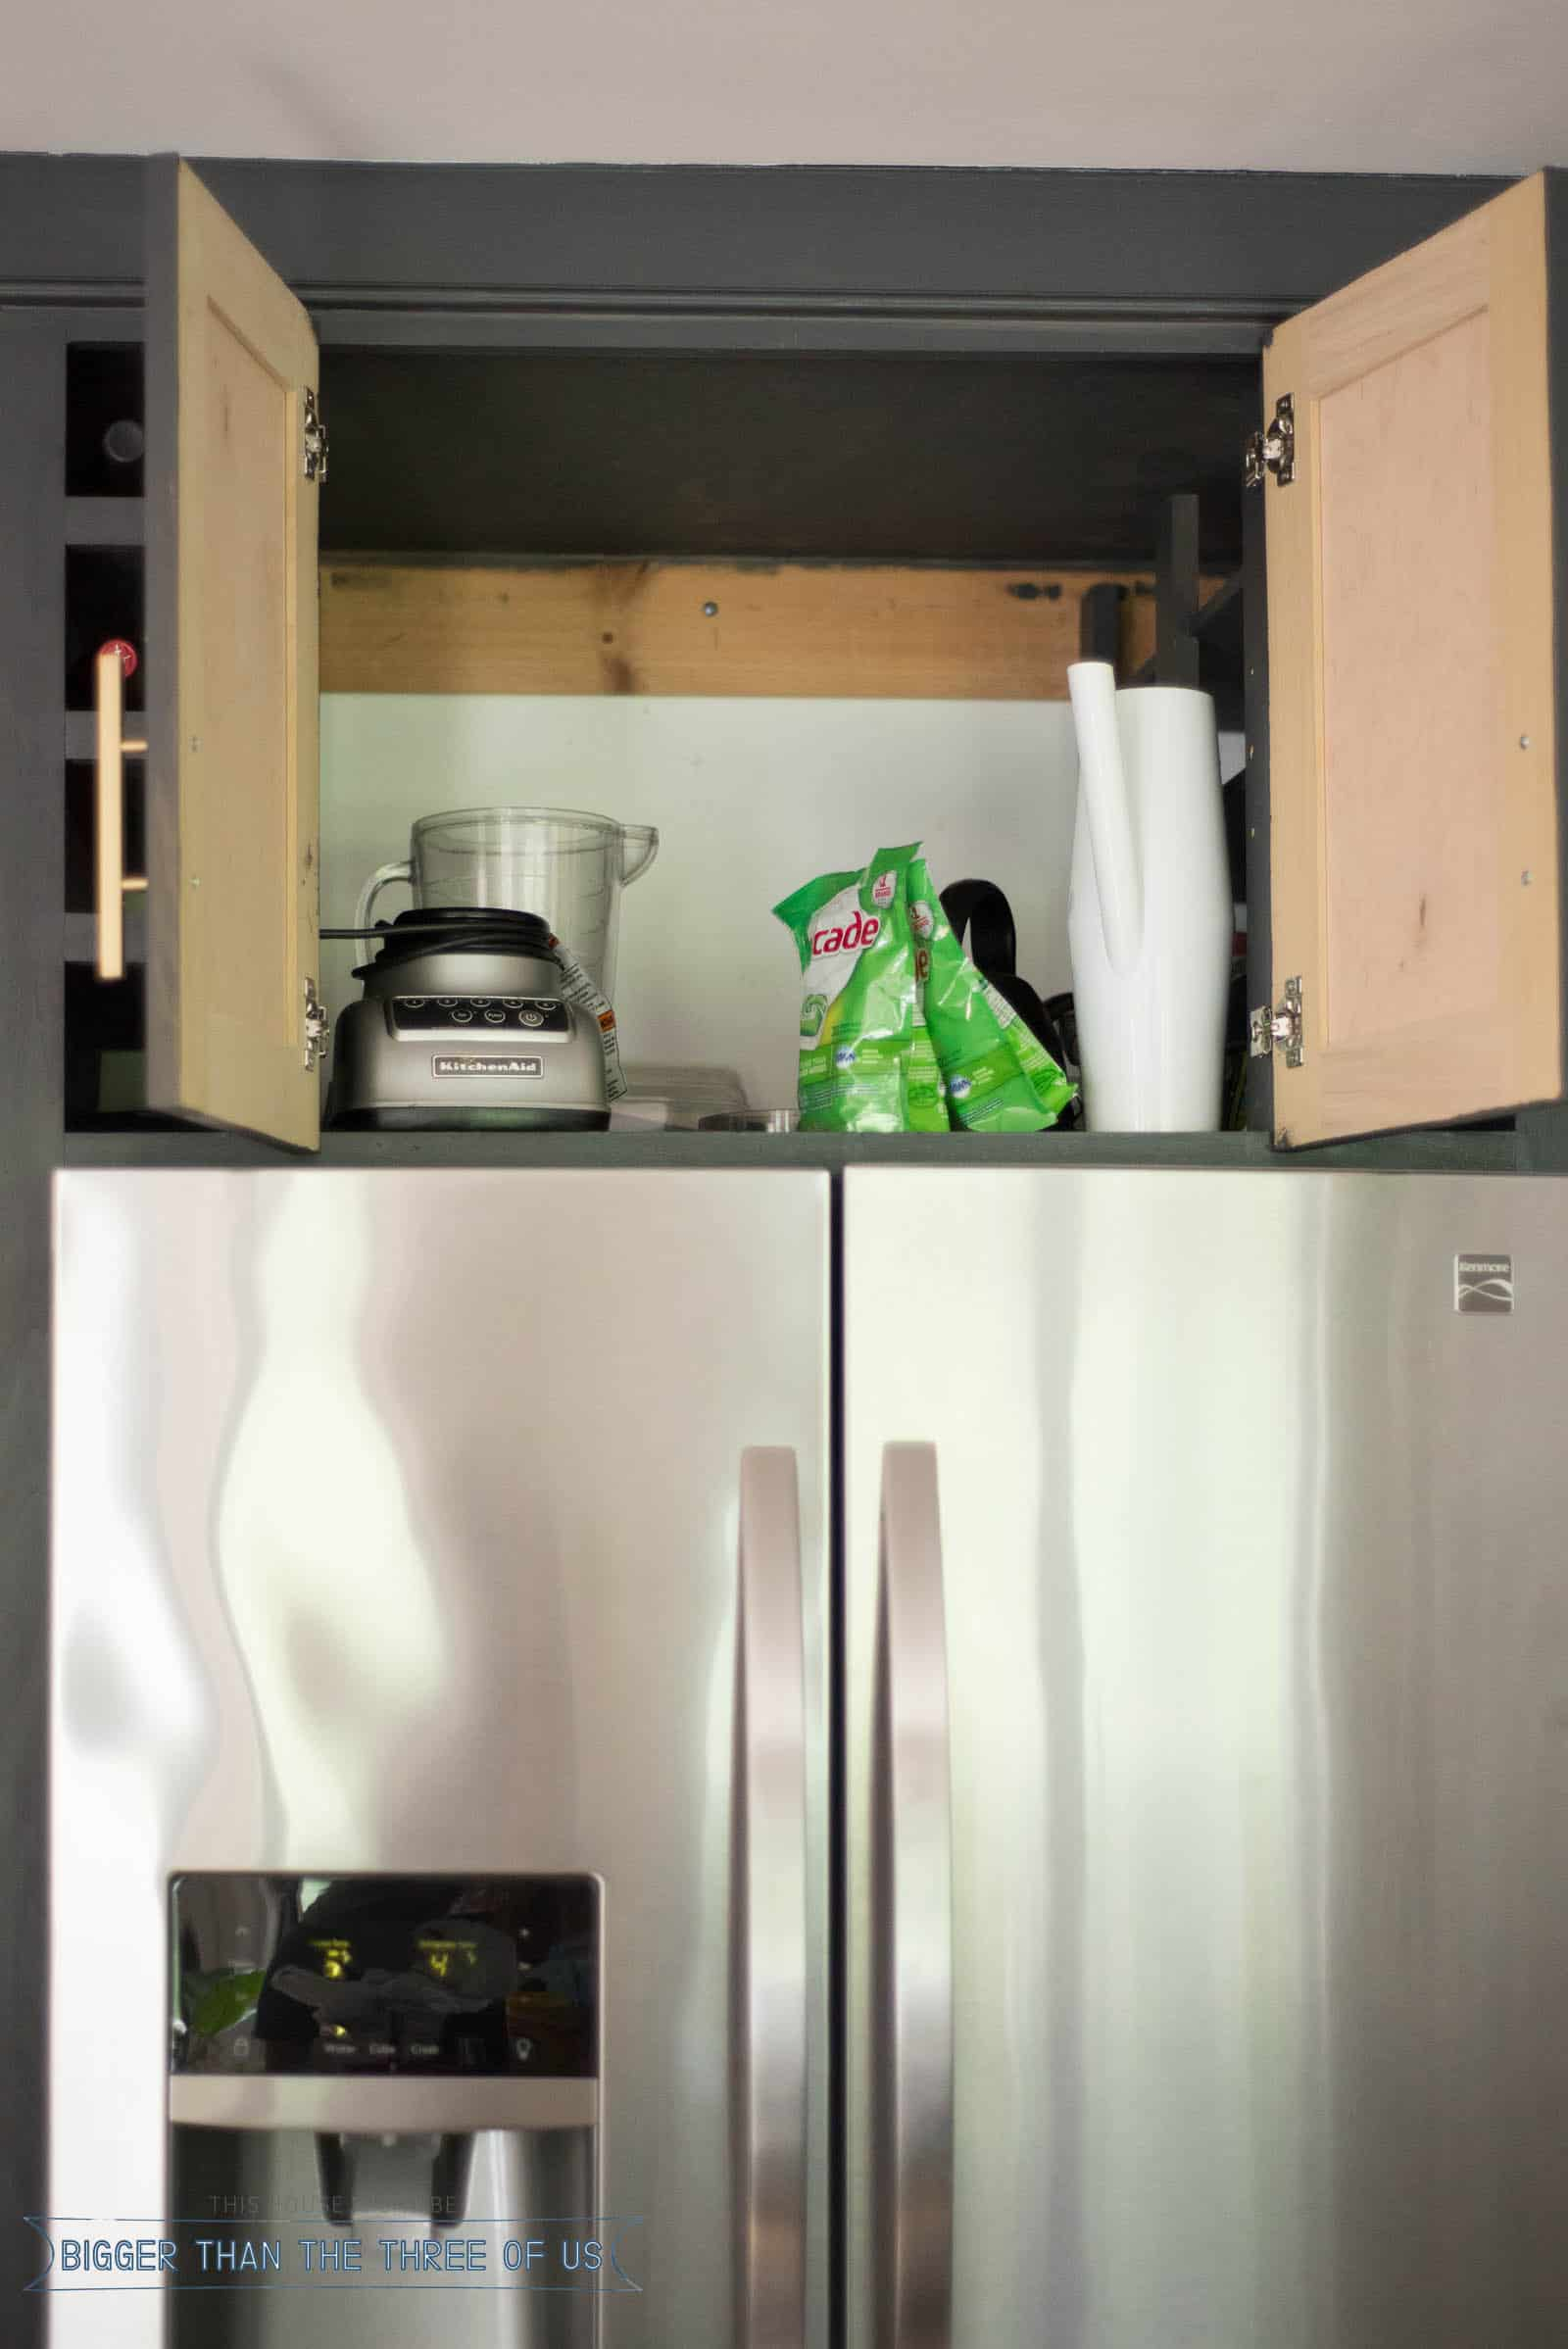 How to Organize Above Your Fridge. Kitchen Cabinet organization without spending a ton of money! #budgetfriendly #organization #kitchencabinetorganization